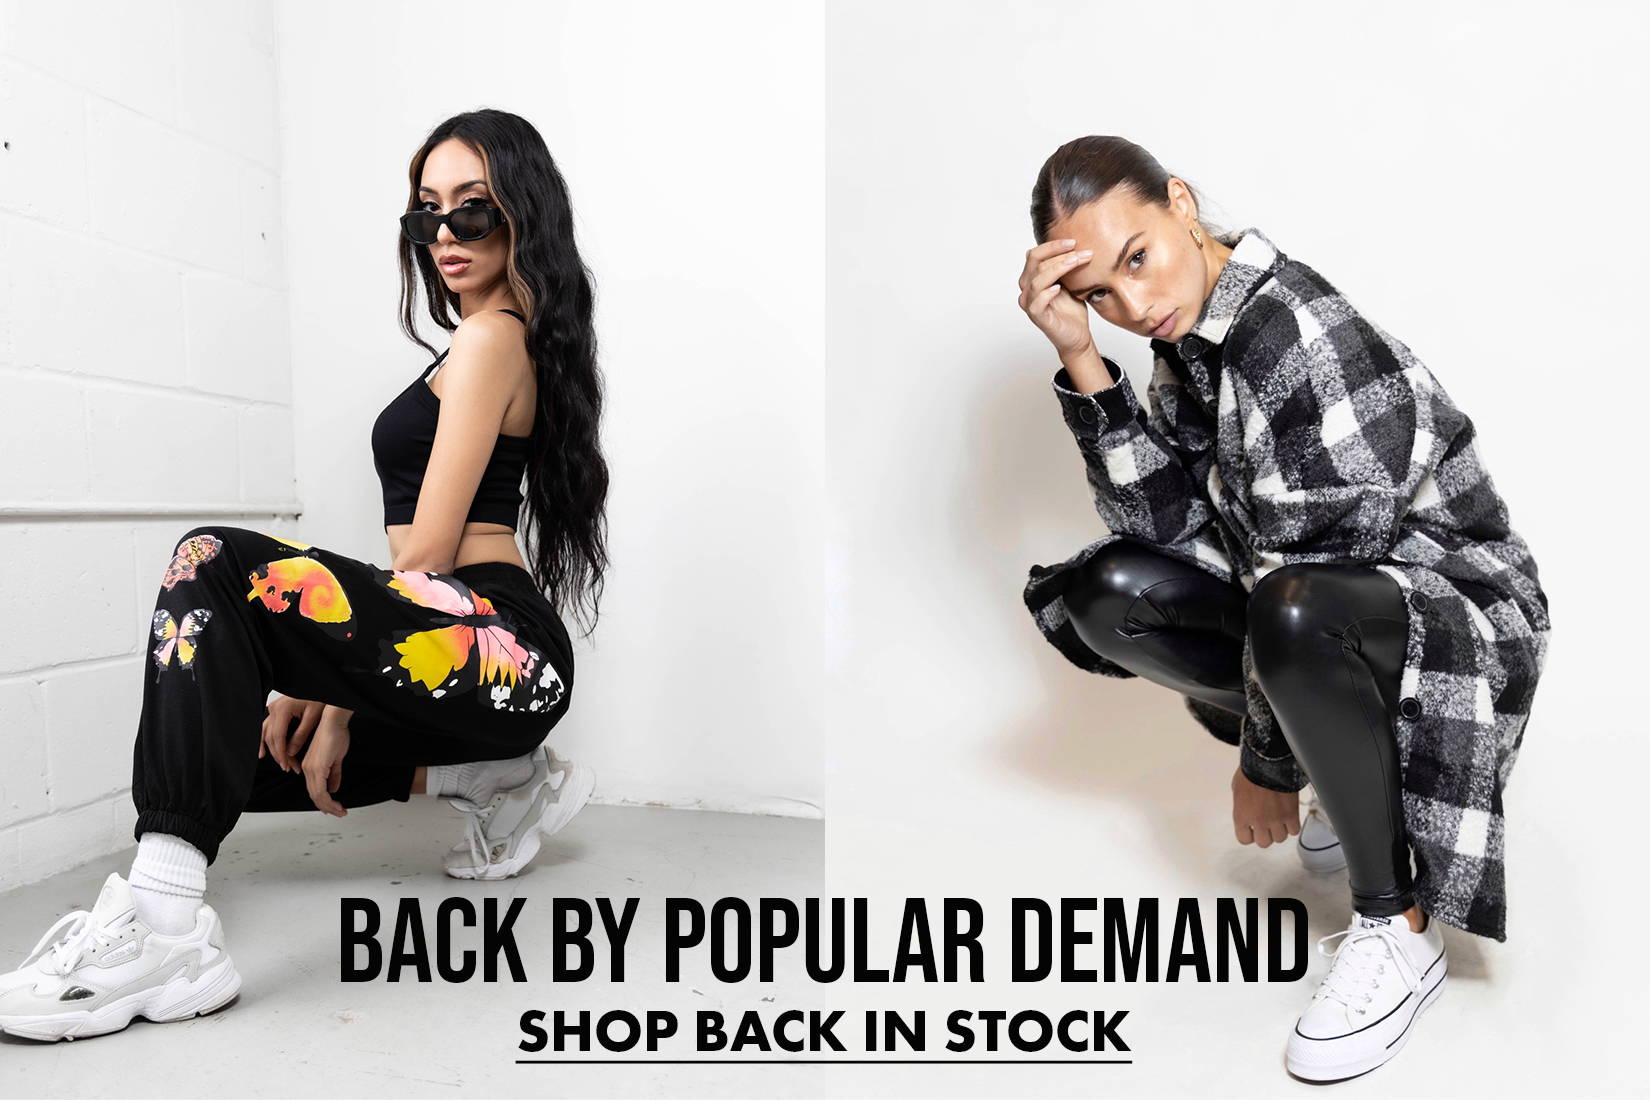 Shop our Items Back in Stock